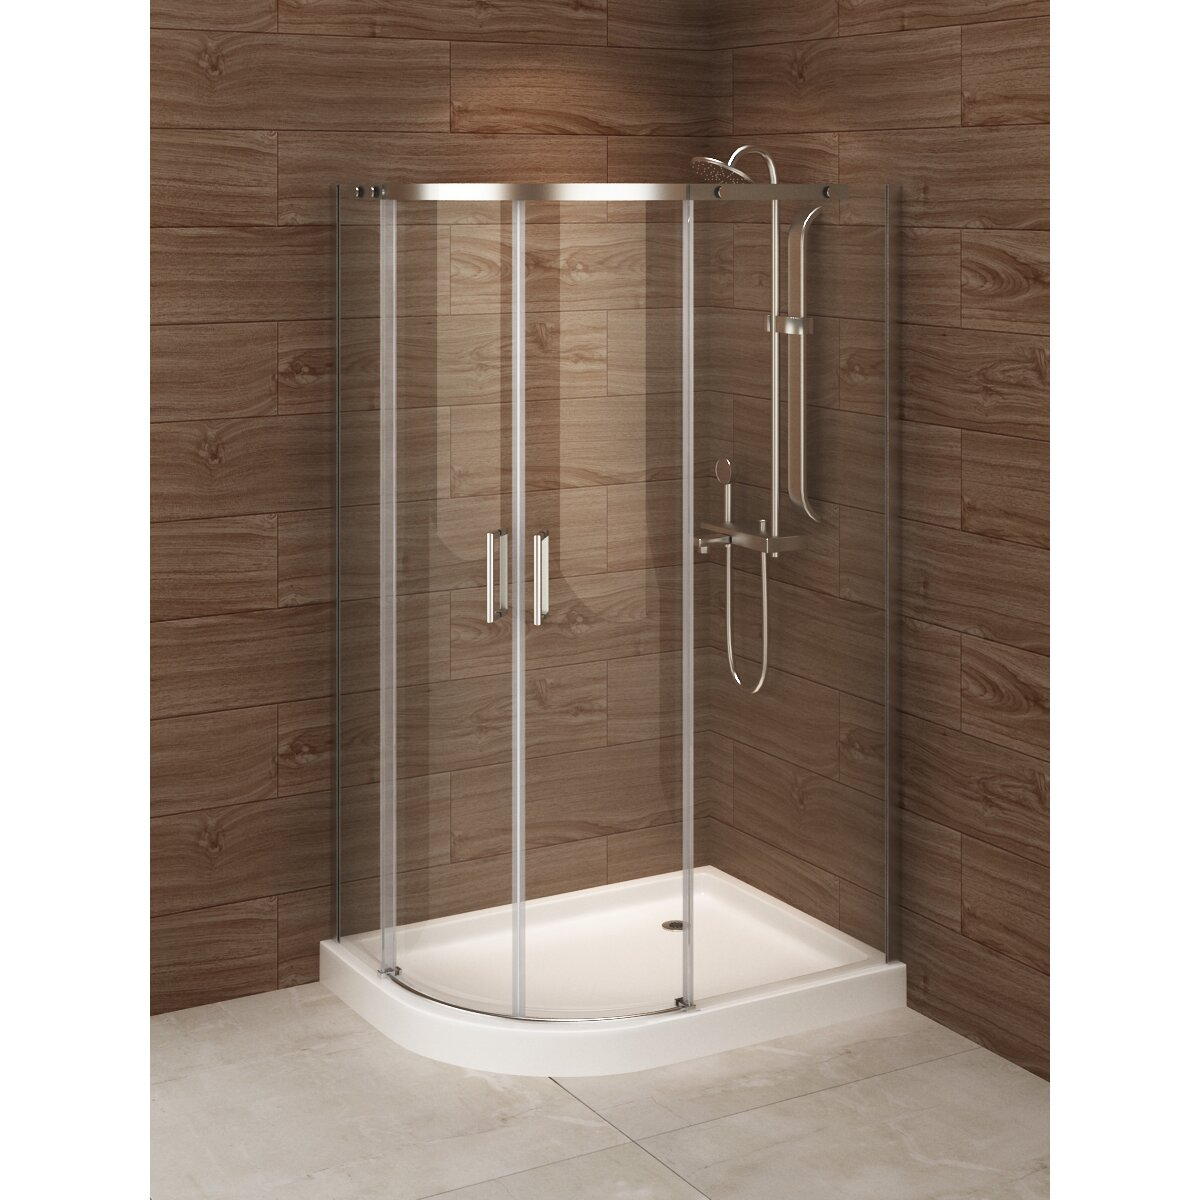 "A&E Bath And Shower Madrid 48"" X 36"" X 77"" Sliding Shower"